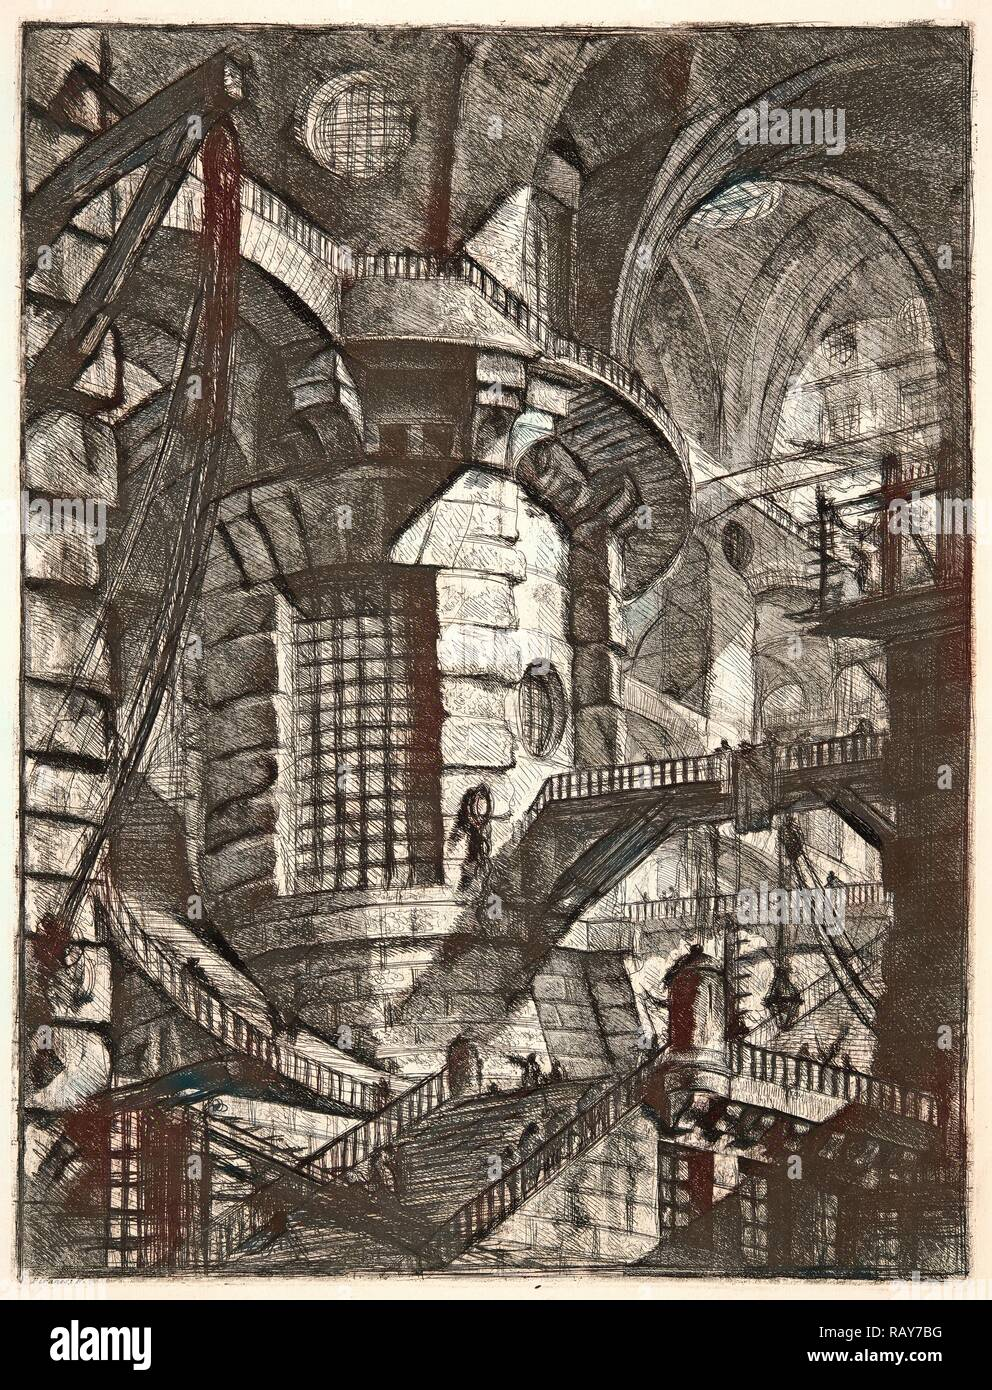 Giovanni Battista Piranesi (Italian, 1720 - 1778). The Round Tower, 1761. From Carceri d'Invenzione di G. Battista reimagined - Stock Image